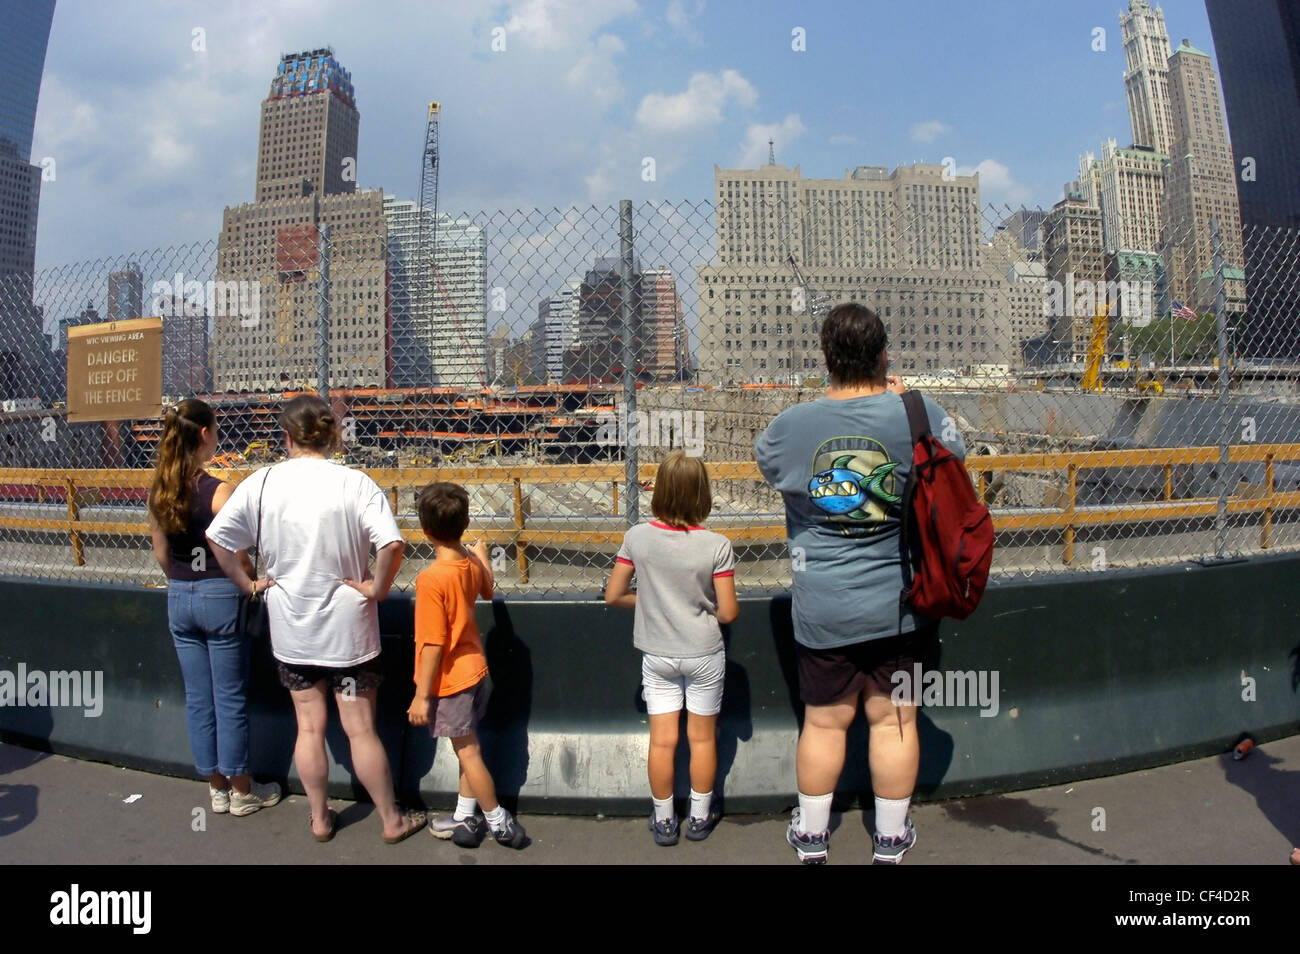 NEW YORK, NY, USA - Family of Tourists at 'Ground Zero' Site of Destroyed World Trade Center Bldgs., Looking - Stock Image